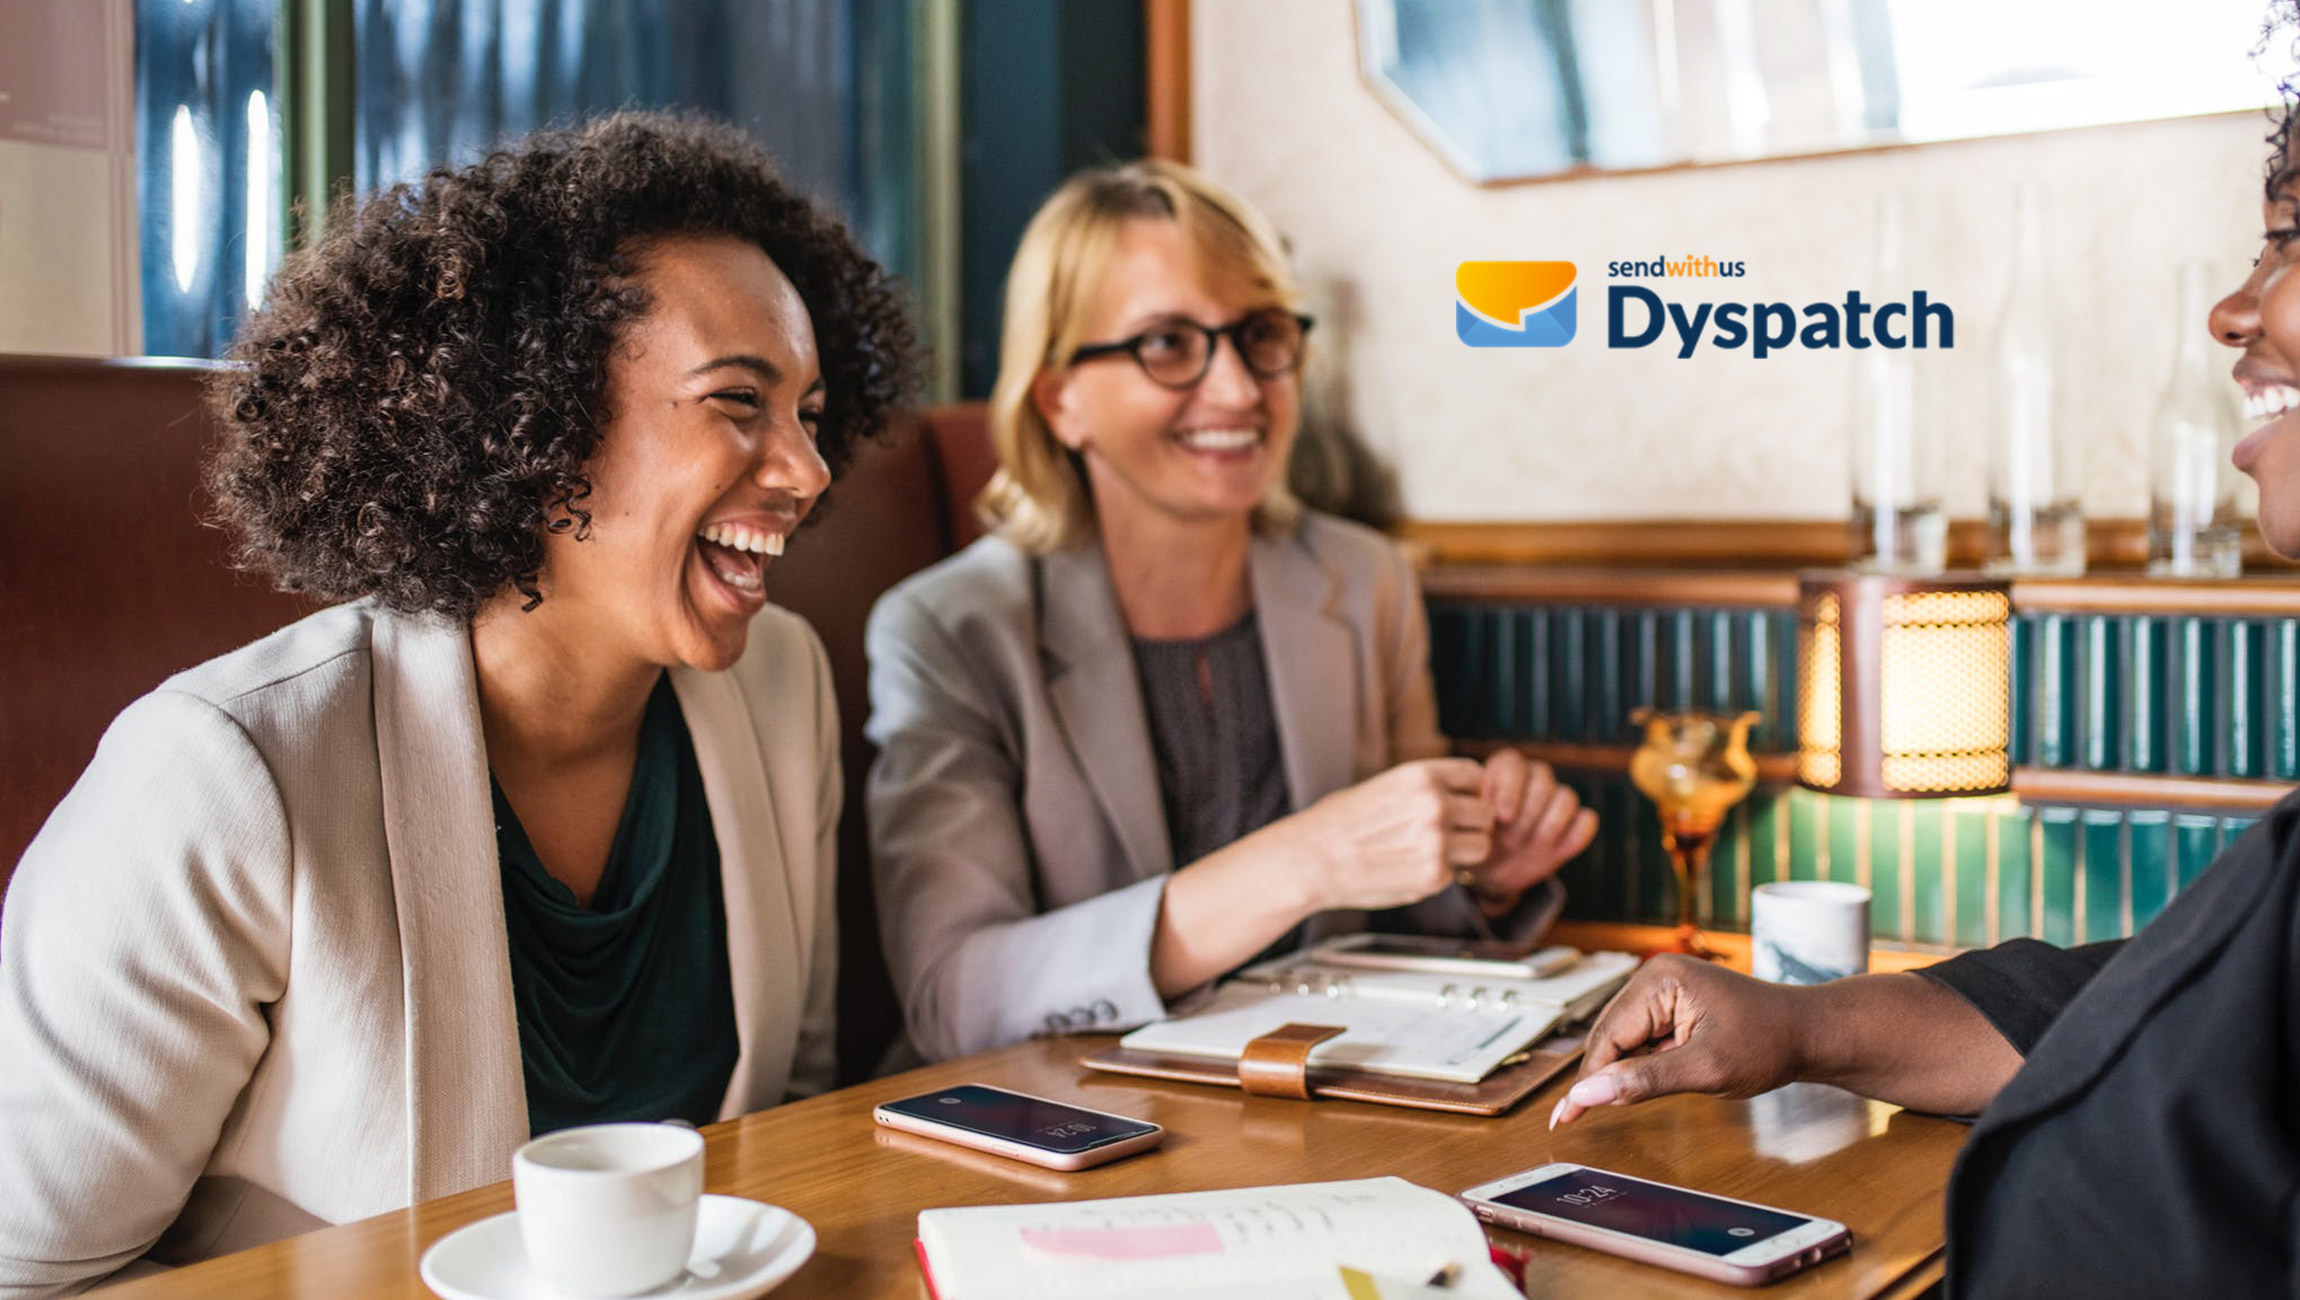 Dyspatch and Mailgun Partnership Brings End-to-End Transactional Email Solution